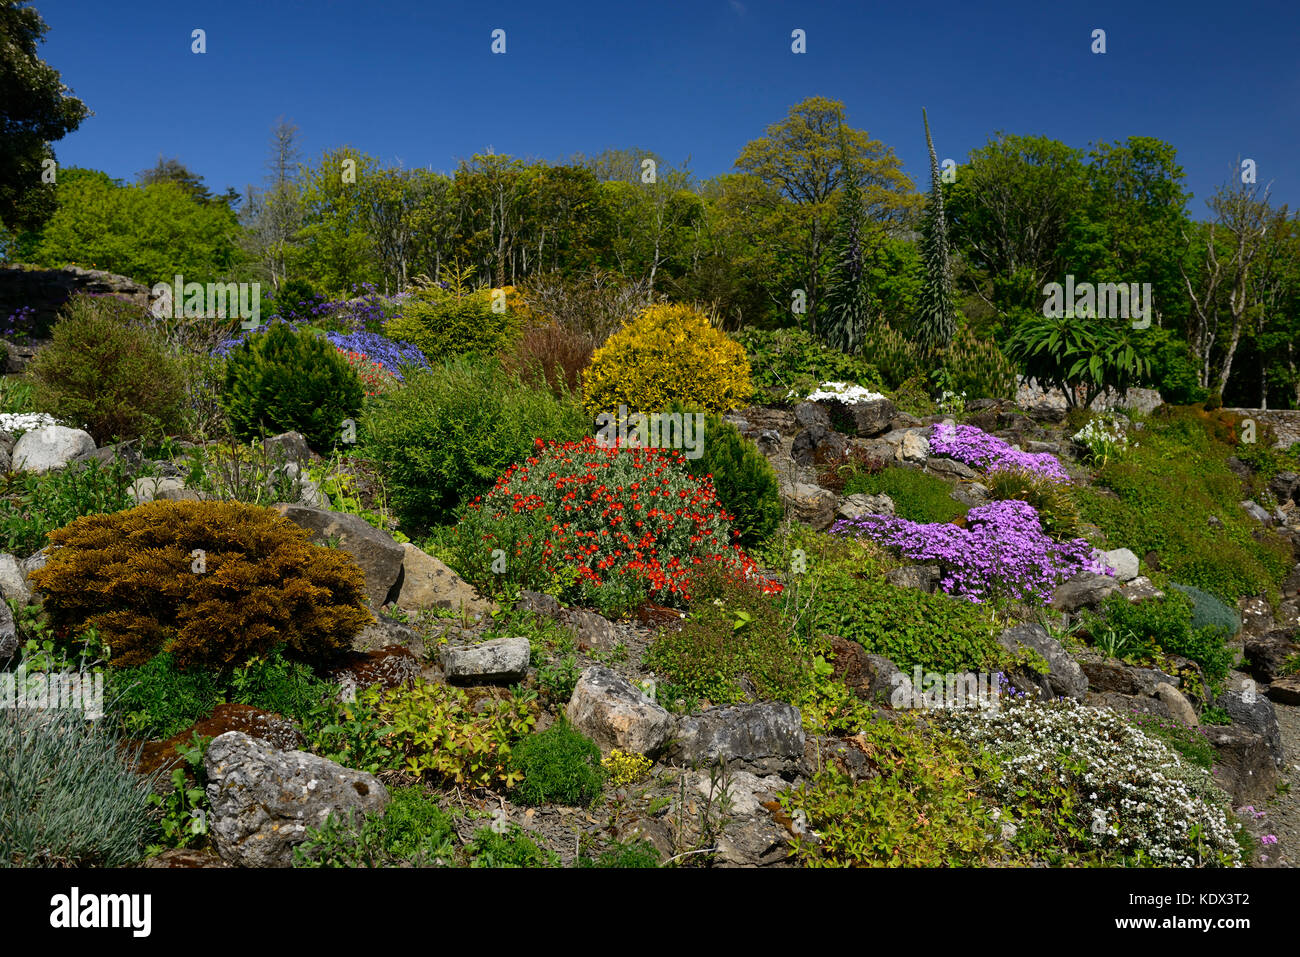 Alpine Gardens, Alpine Garden, Walled Garden, Lissadell House,  Neo Classical Greek Revivalist Style, Country House, Wild Atlantic Way,  Sligo, Ireland,